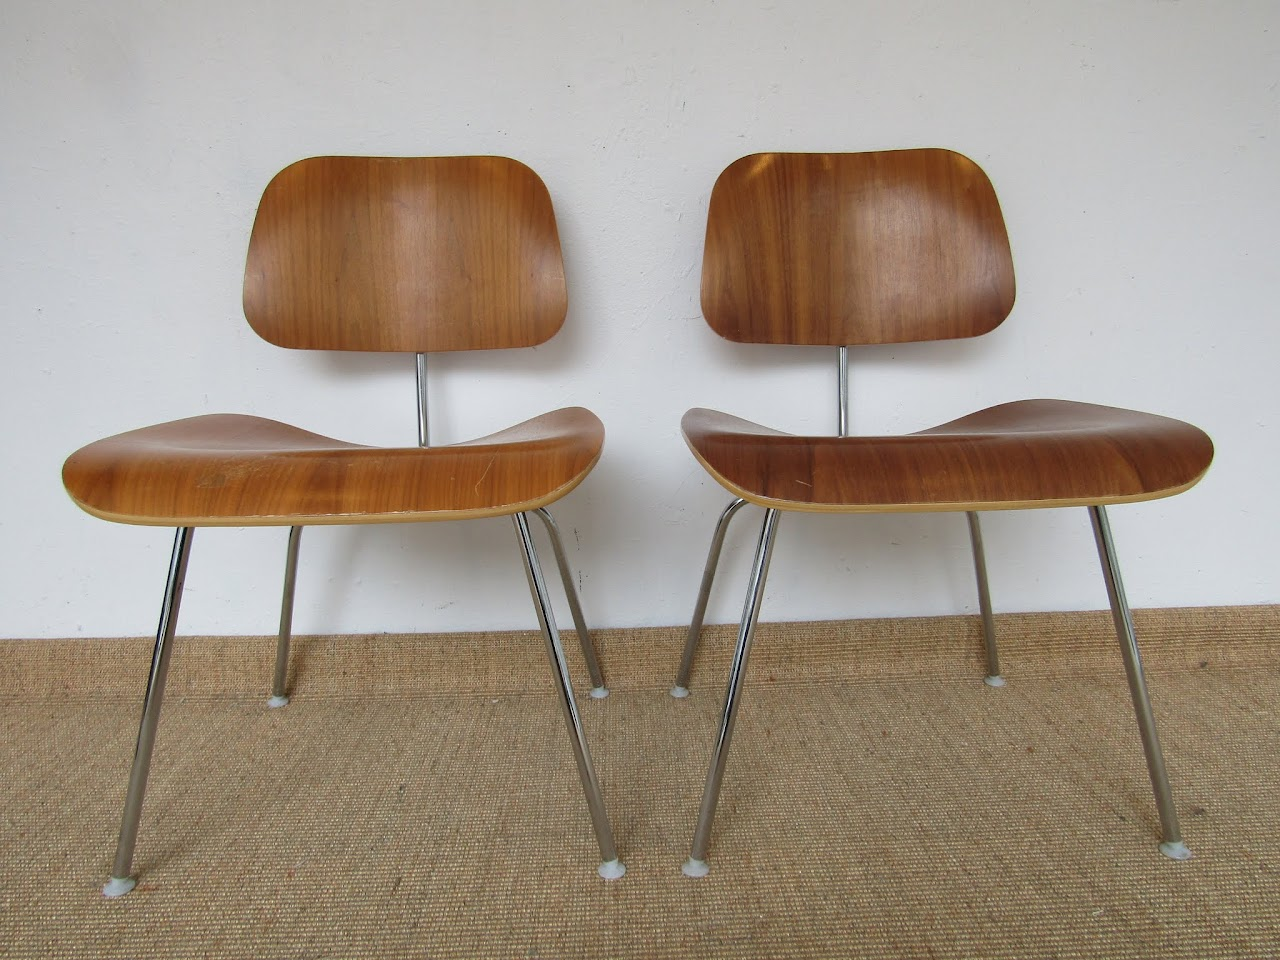 Eames Molded Plywood Chair Pair (4)